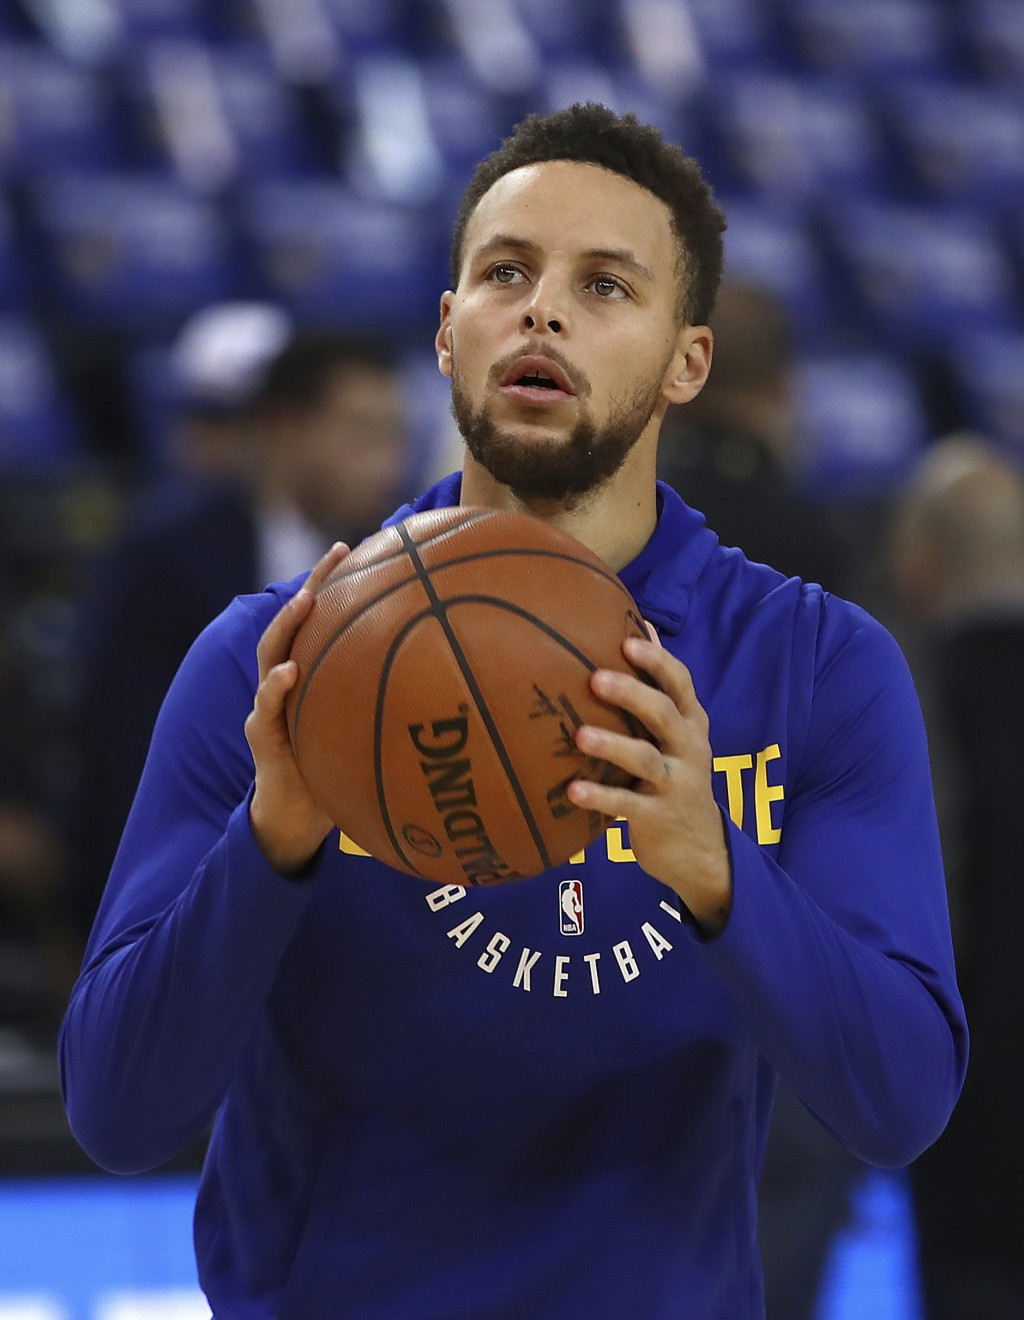 Golden State Warriors' Stephen Curry warms up prior to an NBA basketball game against the Charlotte Hornets on Friday, Dec. 29, 2017, in Oakland, Cali...